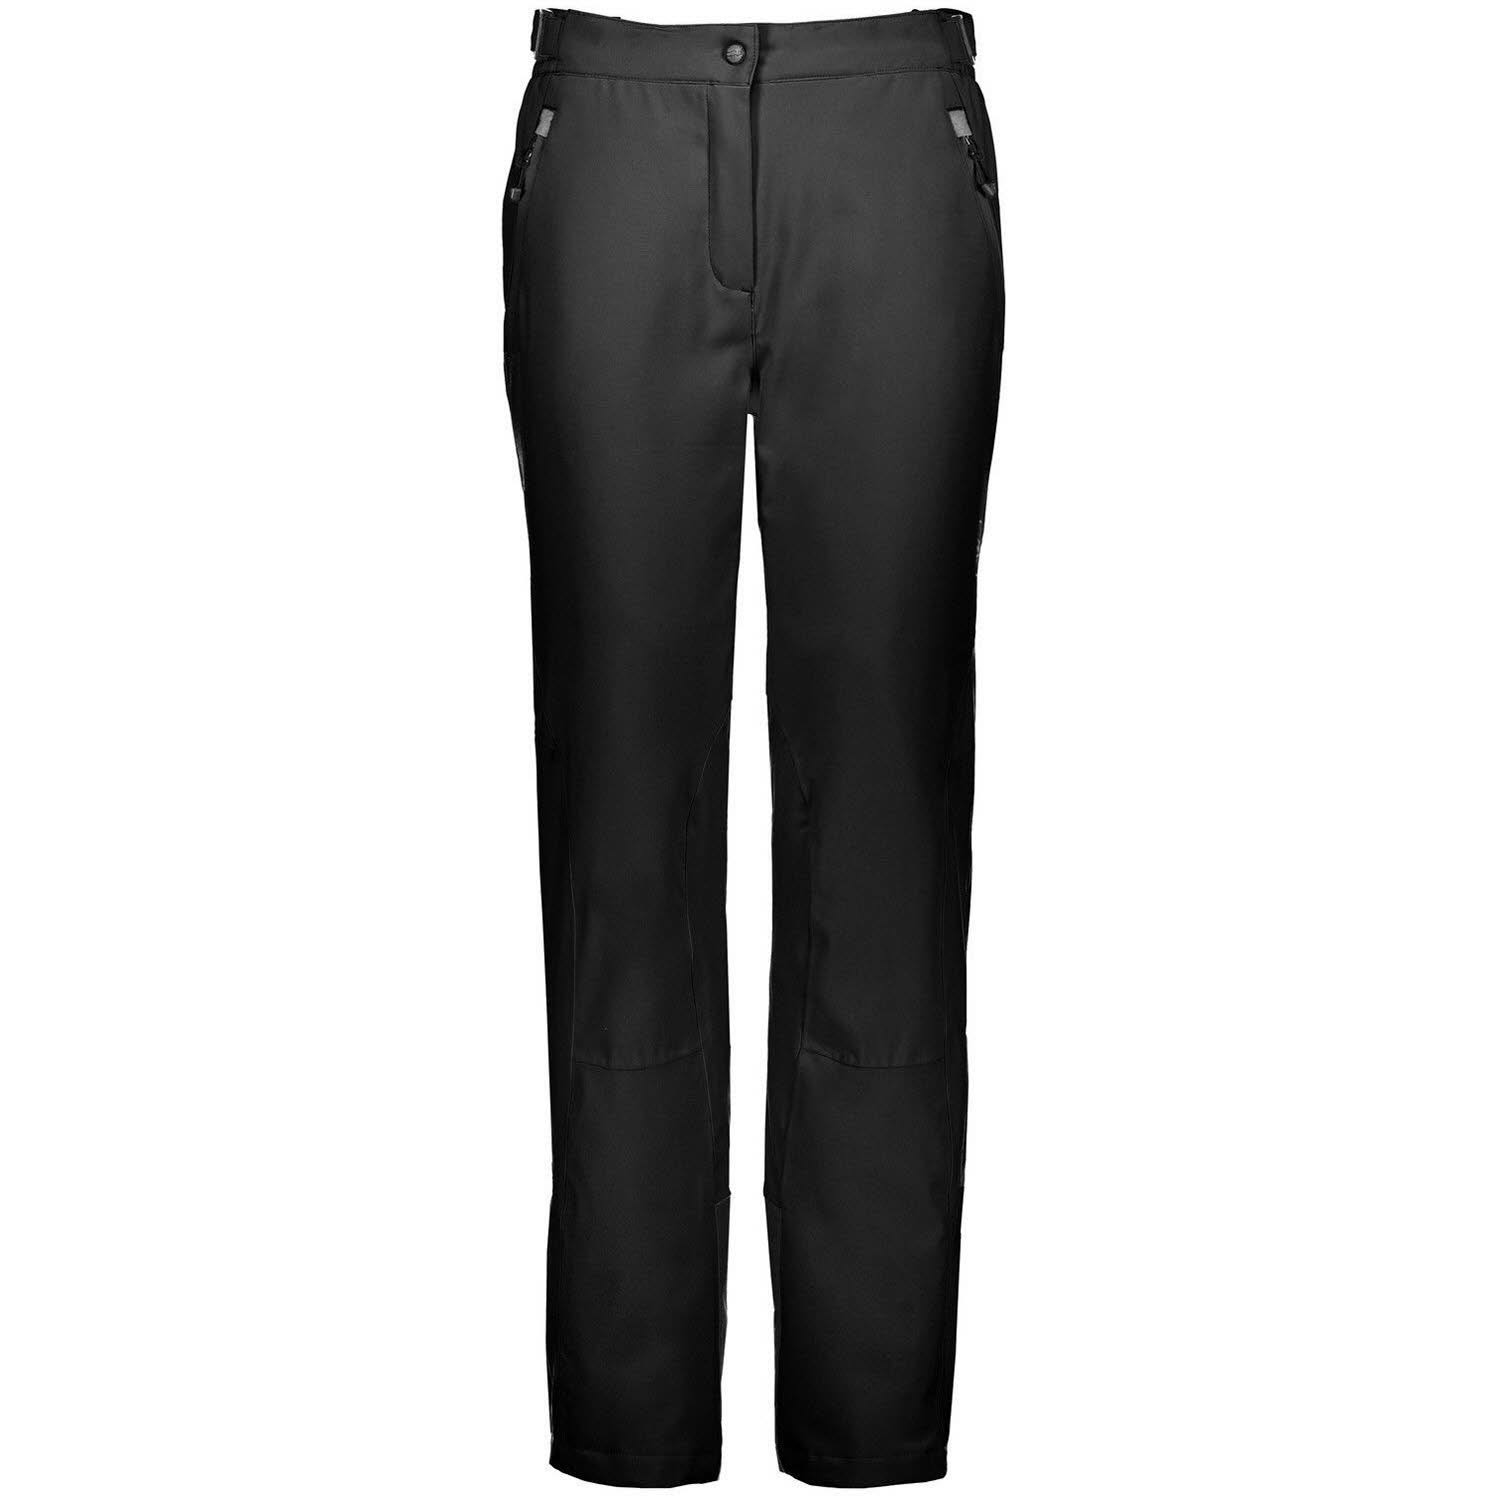 CMP Woman Ski Pant - Black